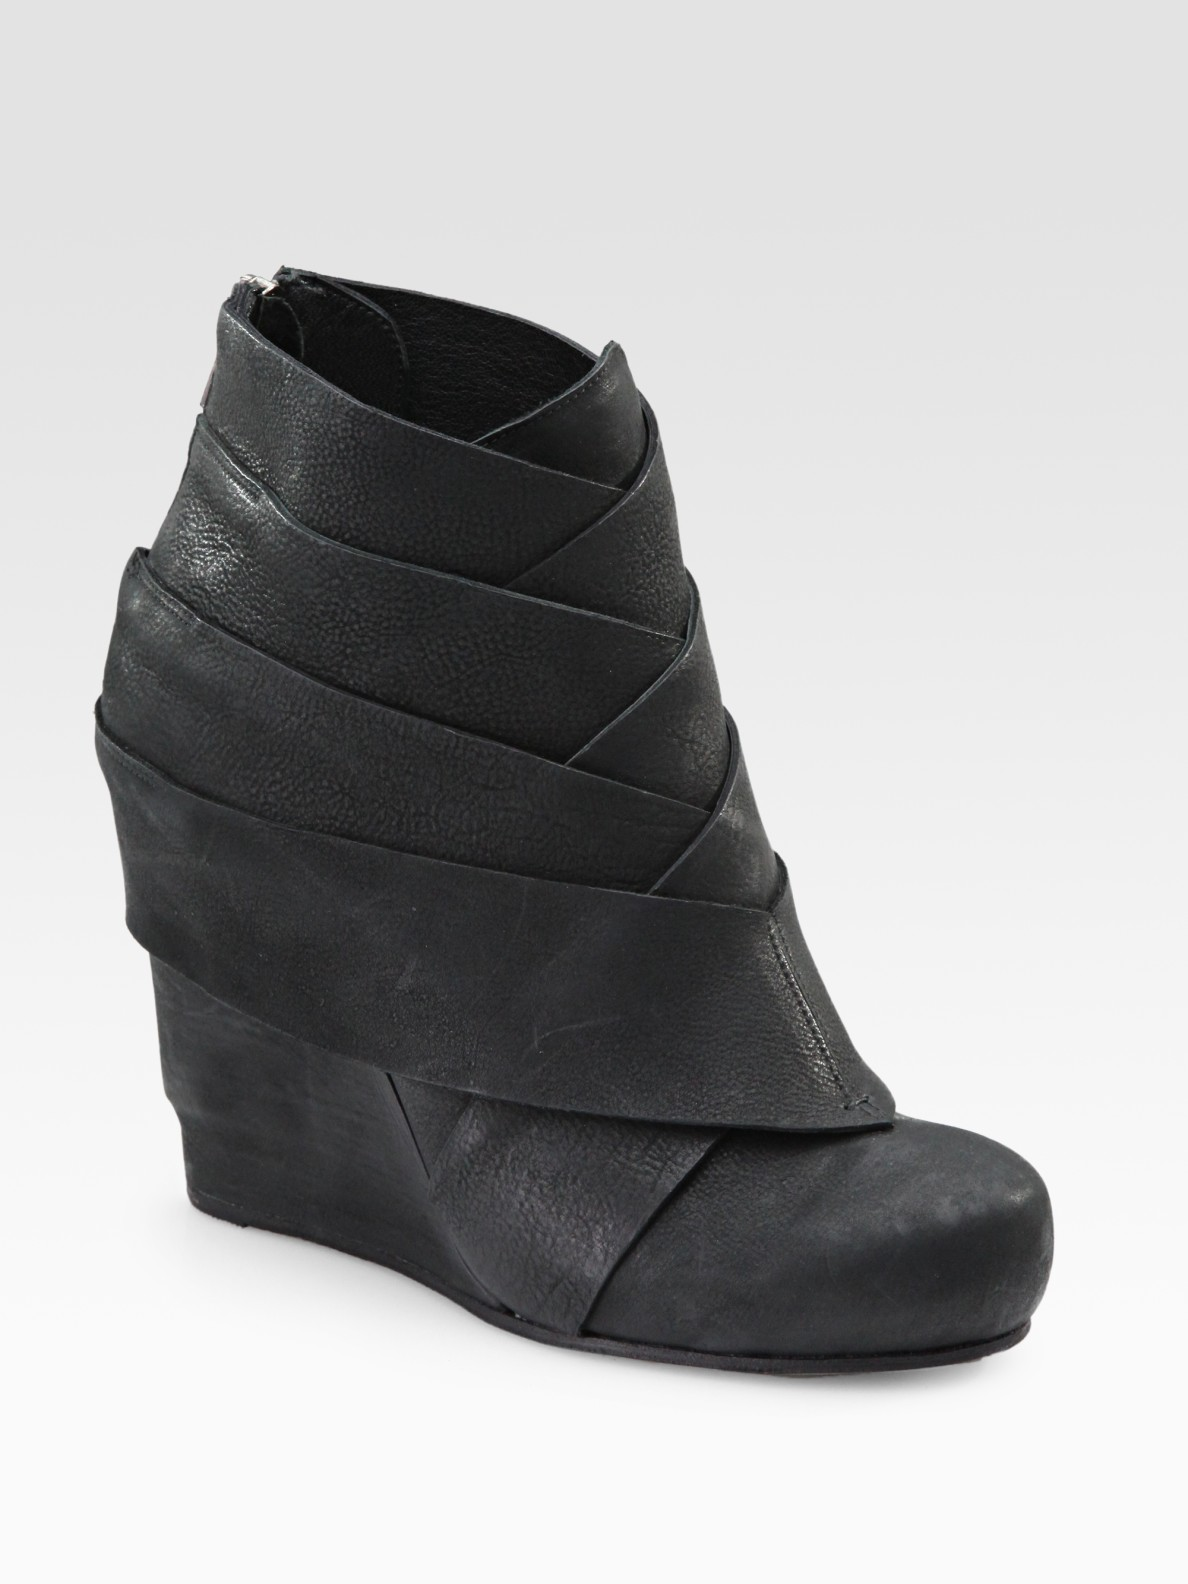 LD Tuttle Leather Wedge Ankle Boots for sale cheap price from china clearance finishline buy sale online sale eastbay outlet the cheapest sbJkHCVE